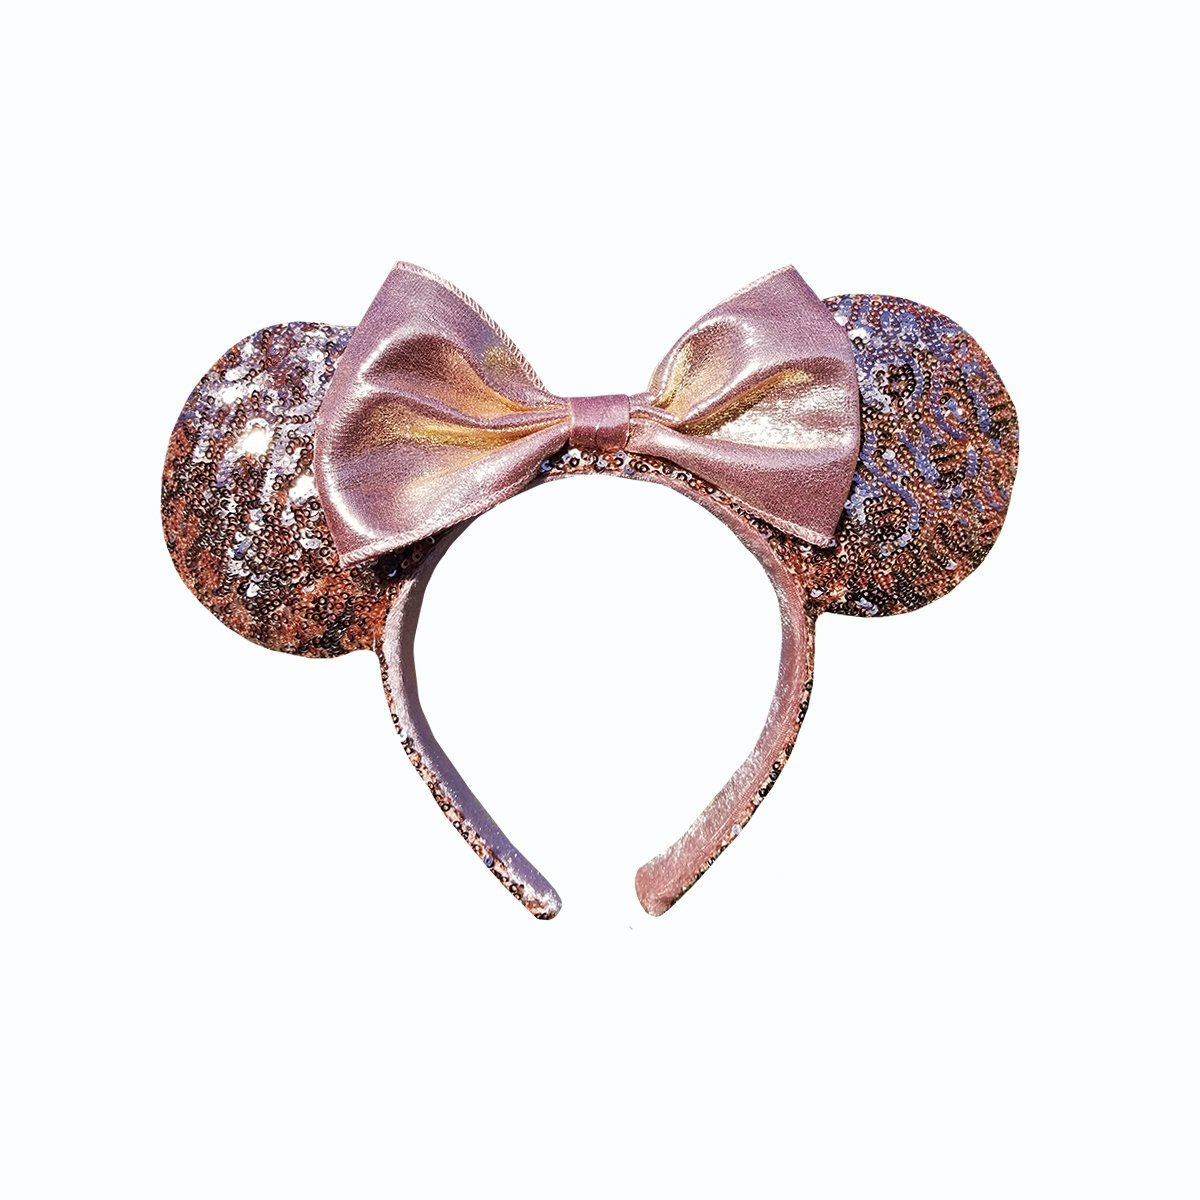 Amazon.com : Minnie Mouse Ears Rose Gold Walt Disney World Authentic Merchandise : Beauty